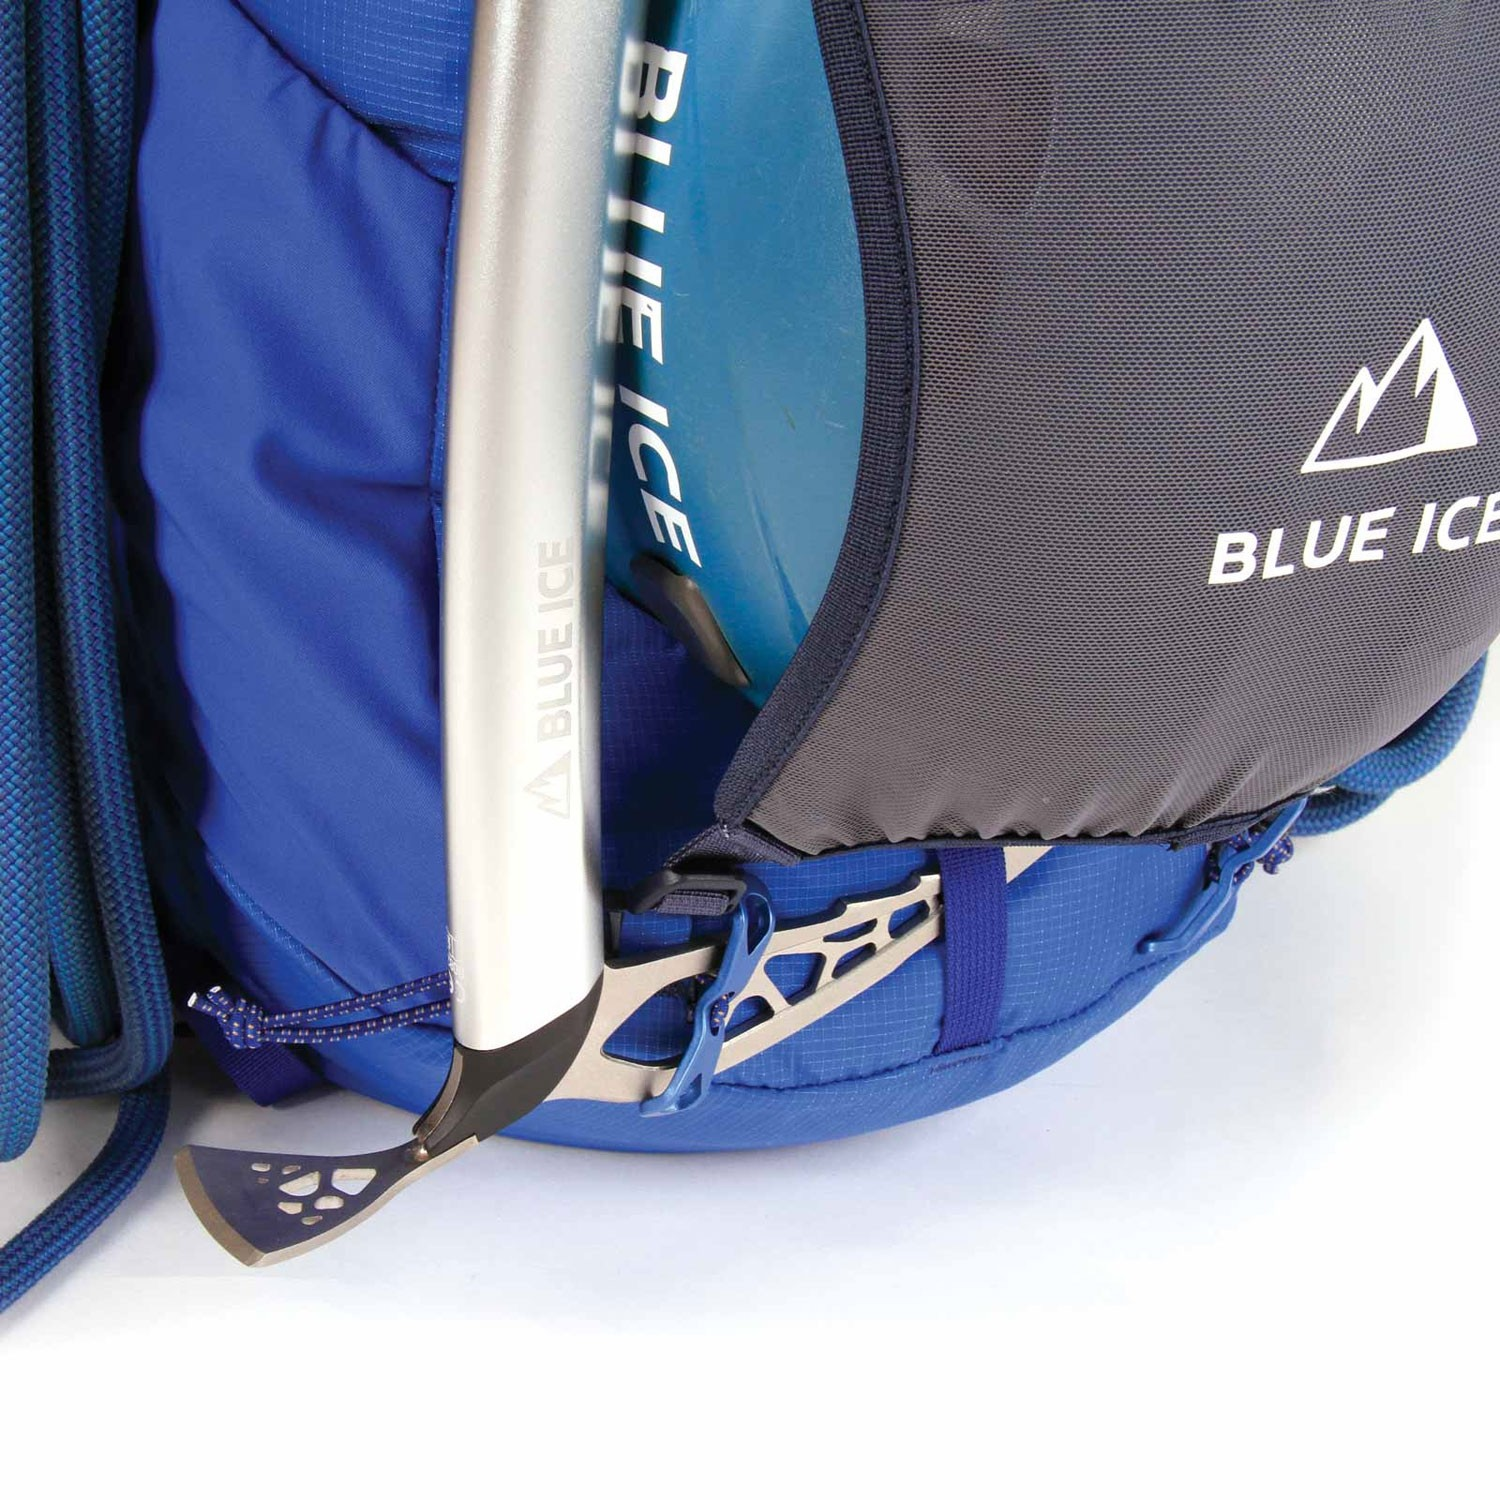 Blue Ice Dragonfly 25L Rucksack - Turkish Blue - Ice axe buckle